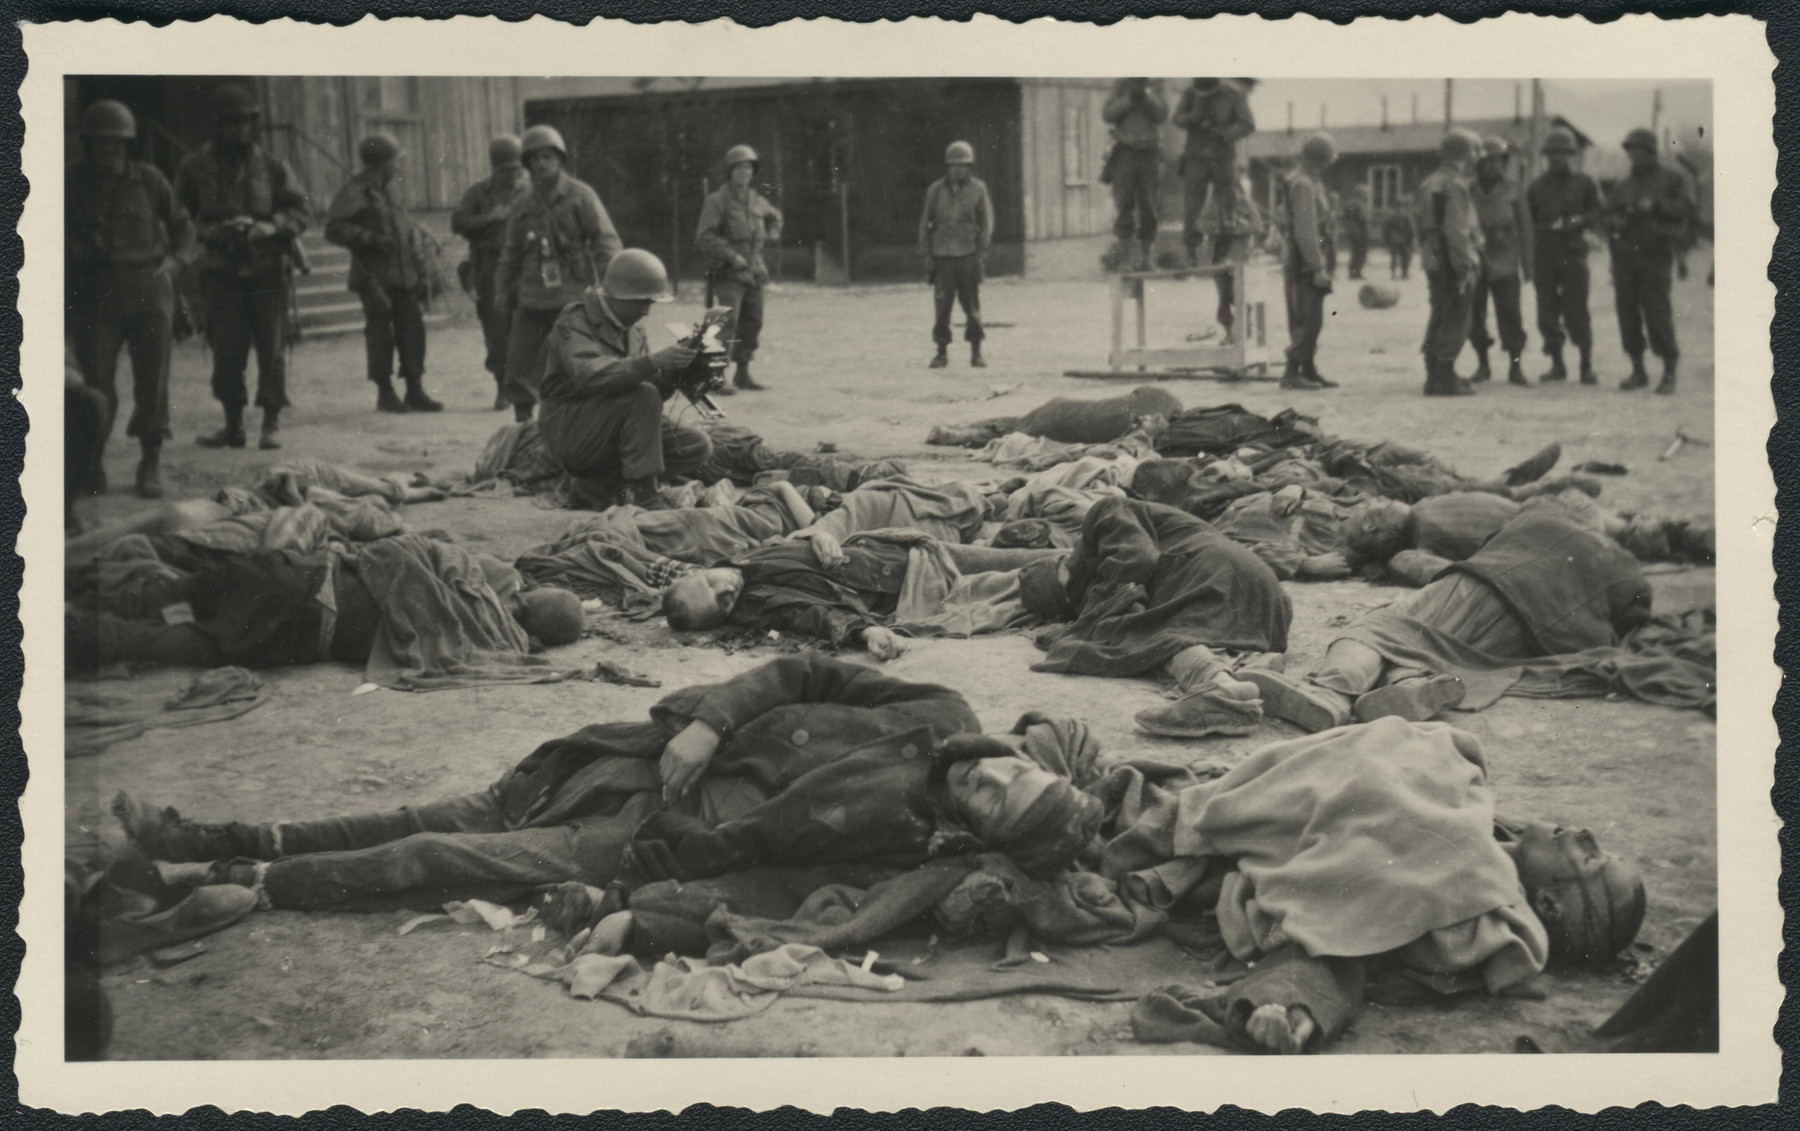 American soldiers take photographs of corpses lying on the ground of the newly liberated Ohrdruf concentration camp.